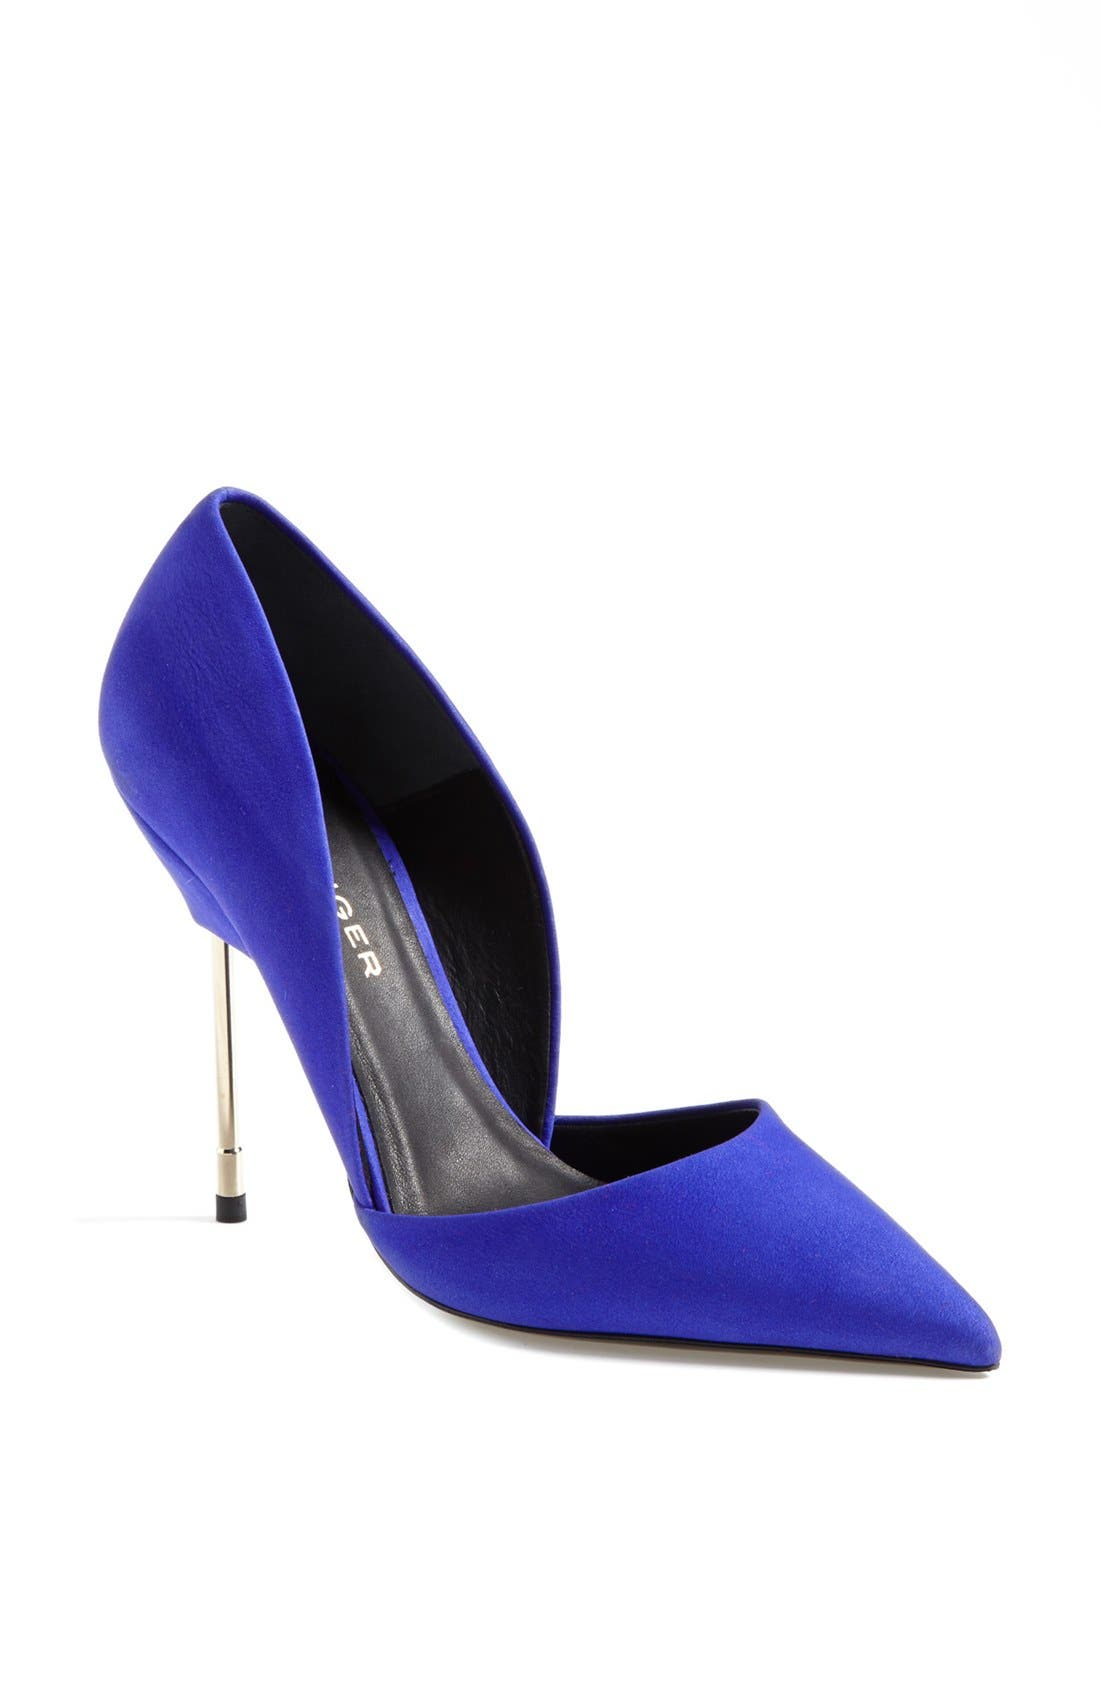 Alternate Image 1 Selected - Kurt Geiger London 'Bond' Suede d'Orsay Pump